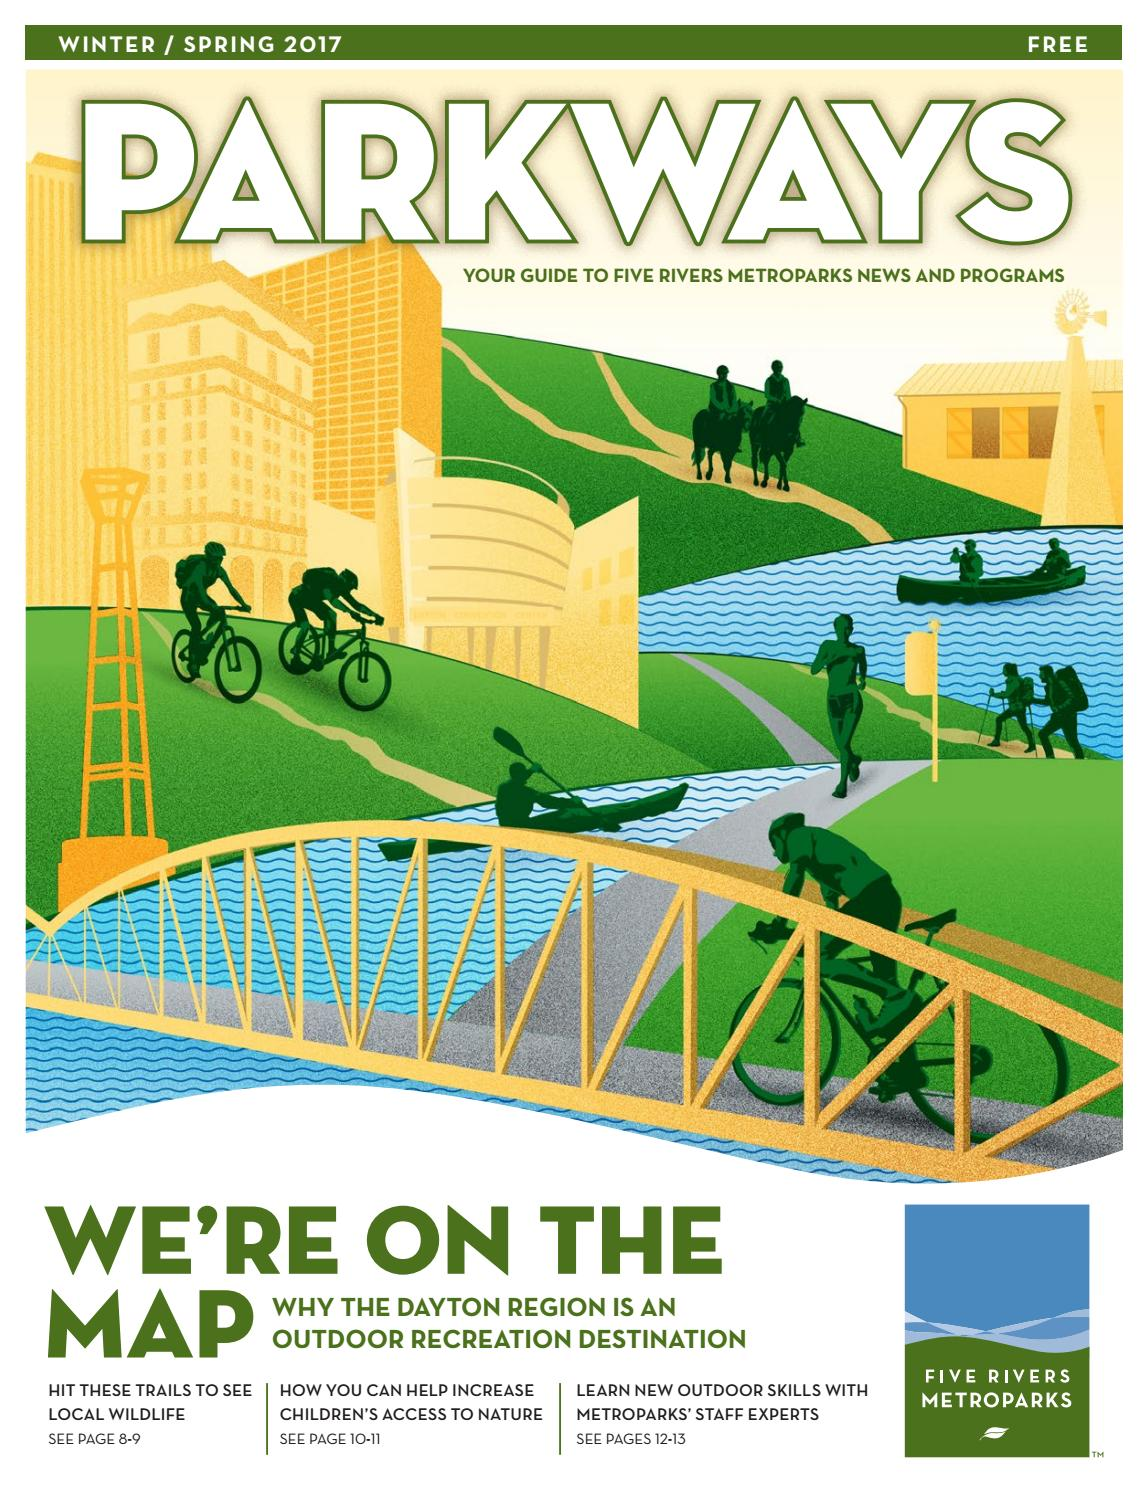 Parkways Winter/Spring 2017